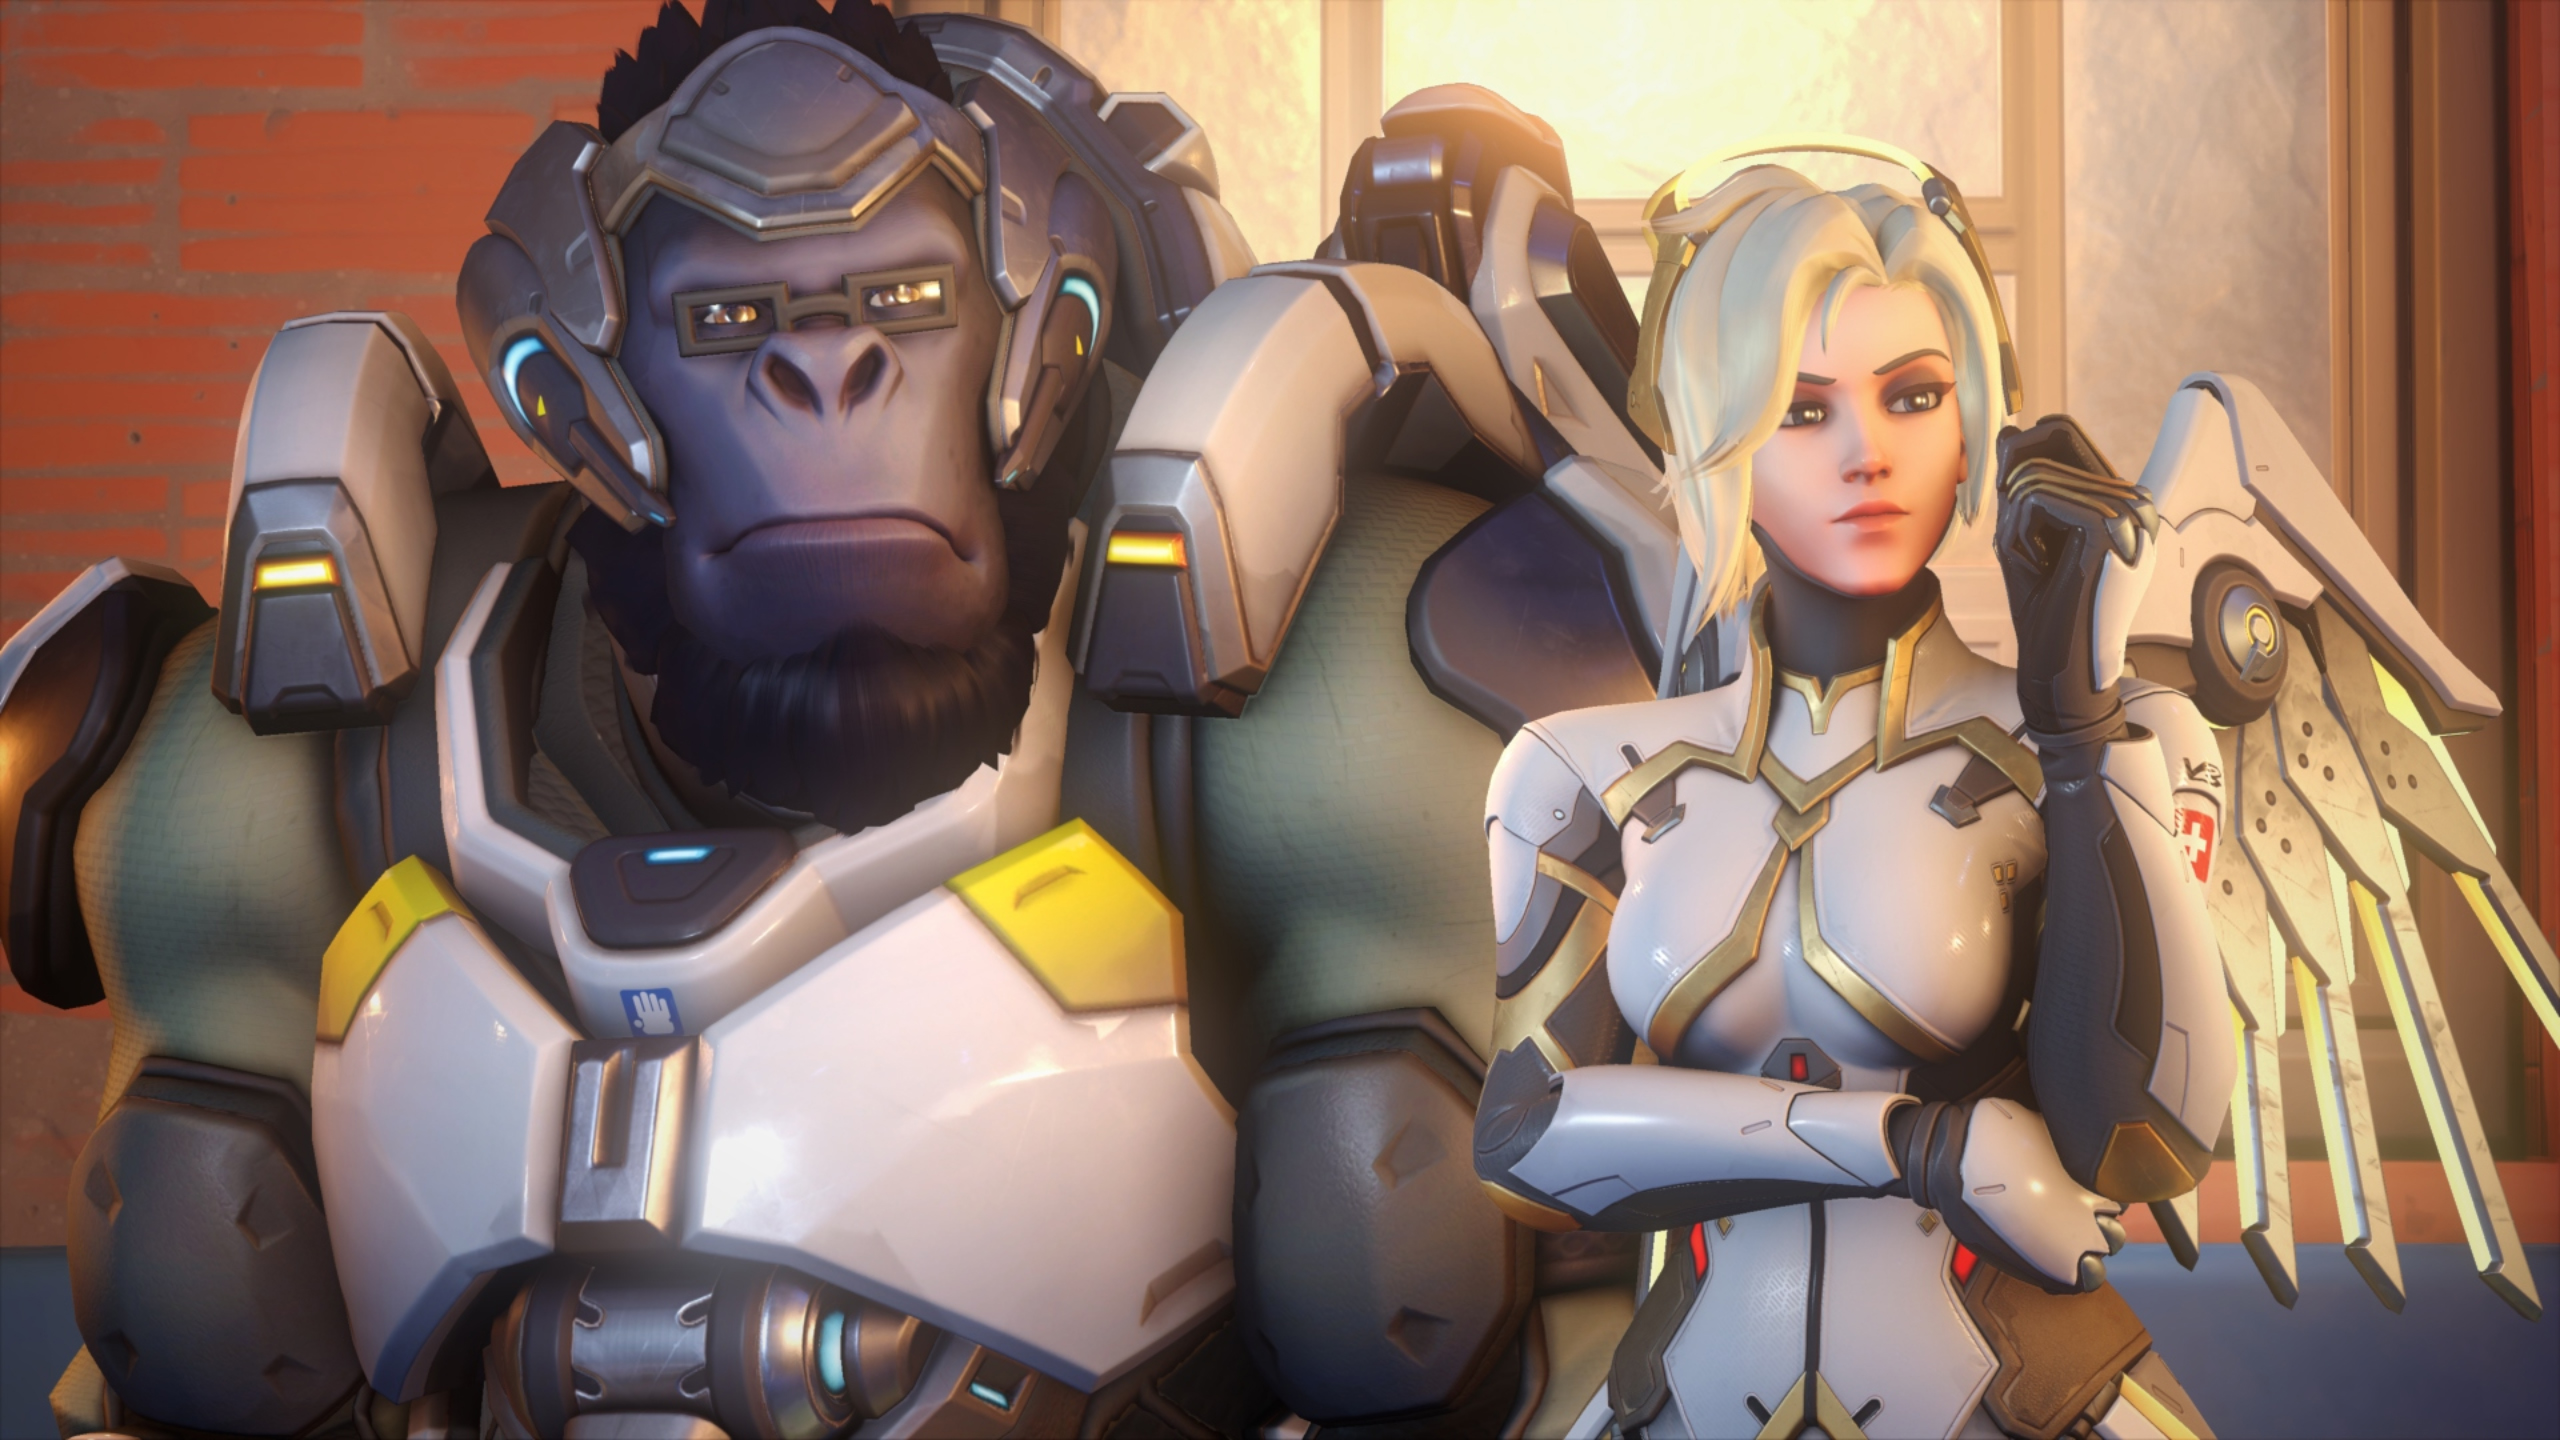 Overwatch 2's story missions are 'a more traditional way' to build the canon